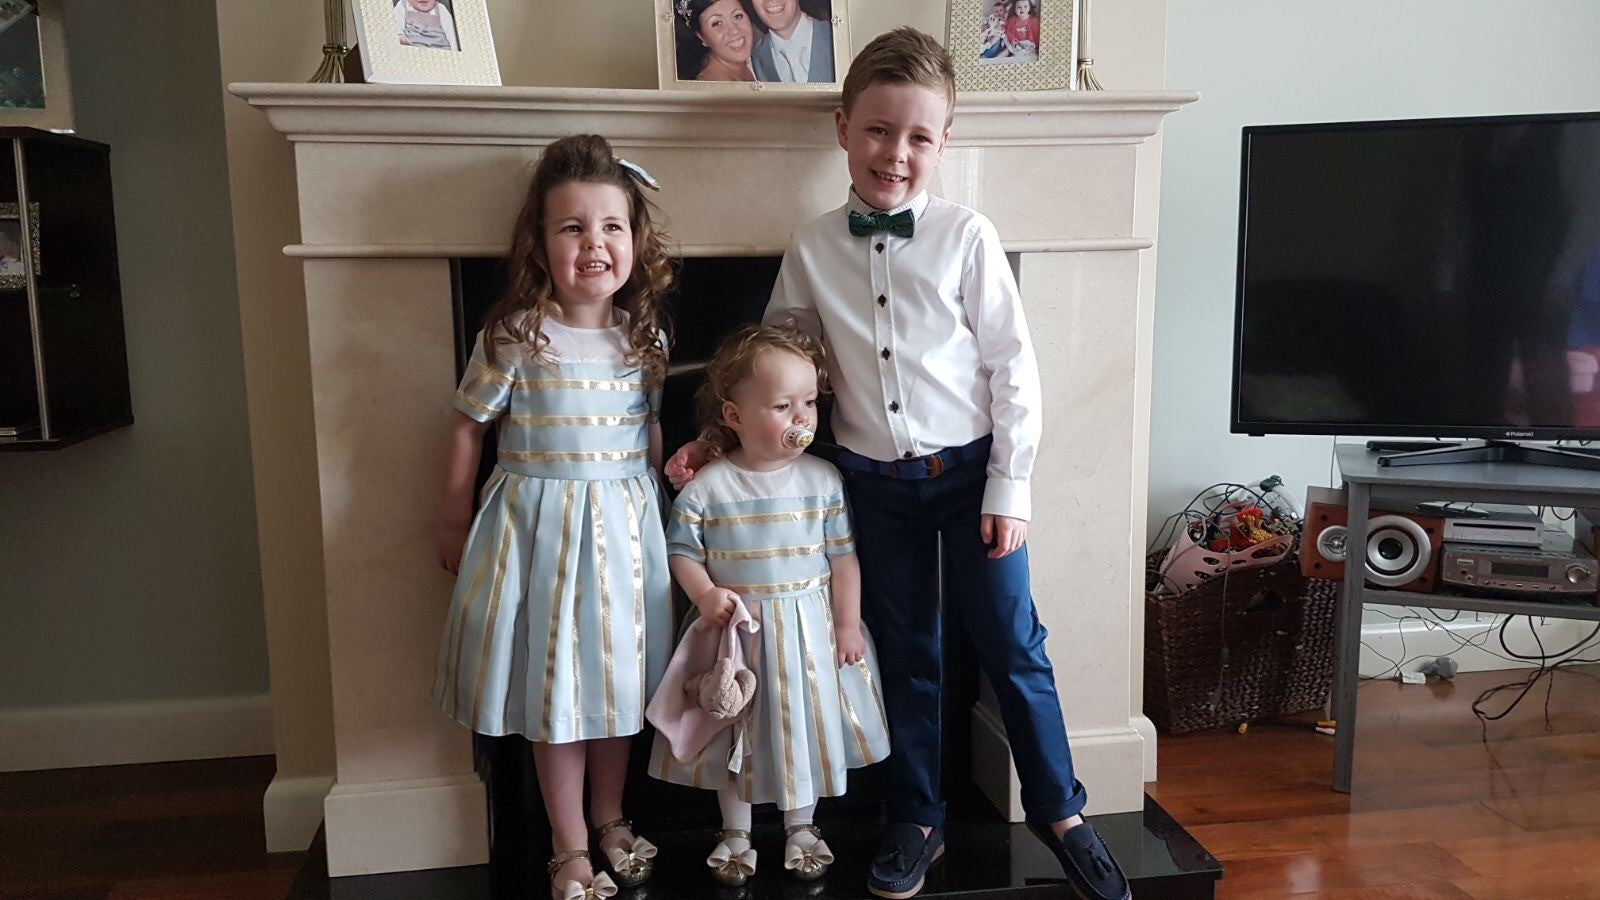 Girls and boys wedding outfits